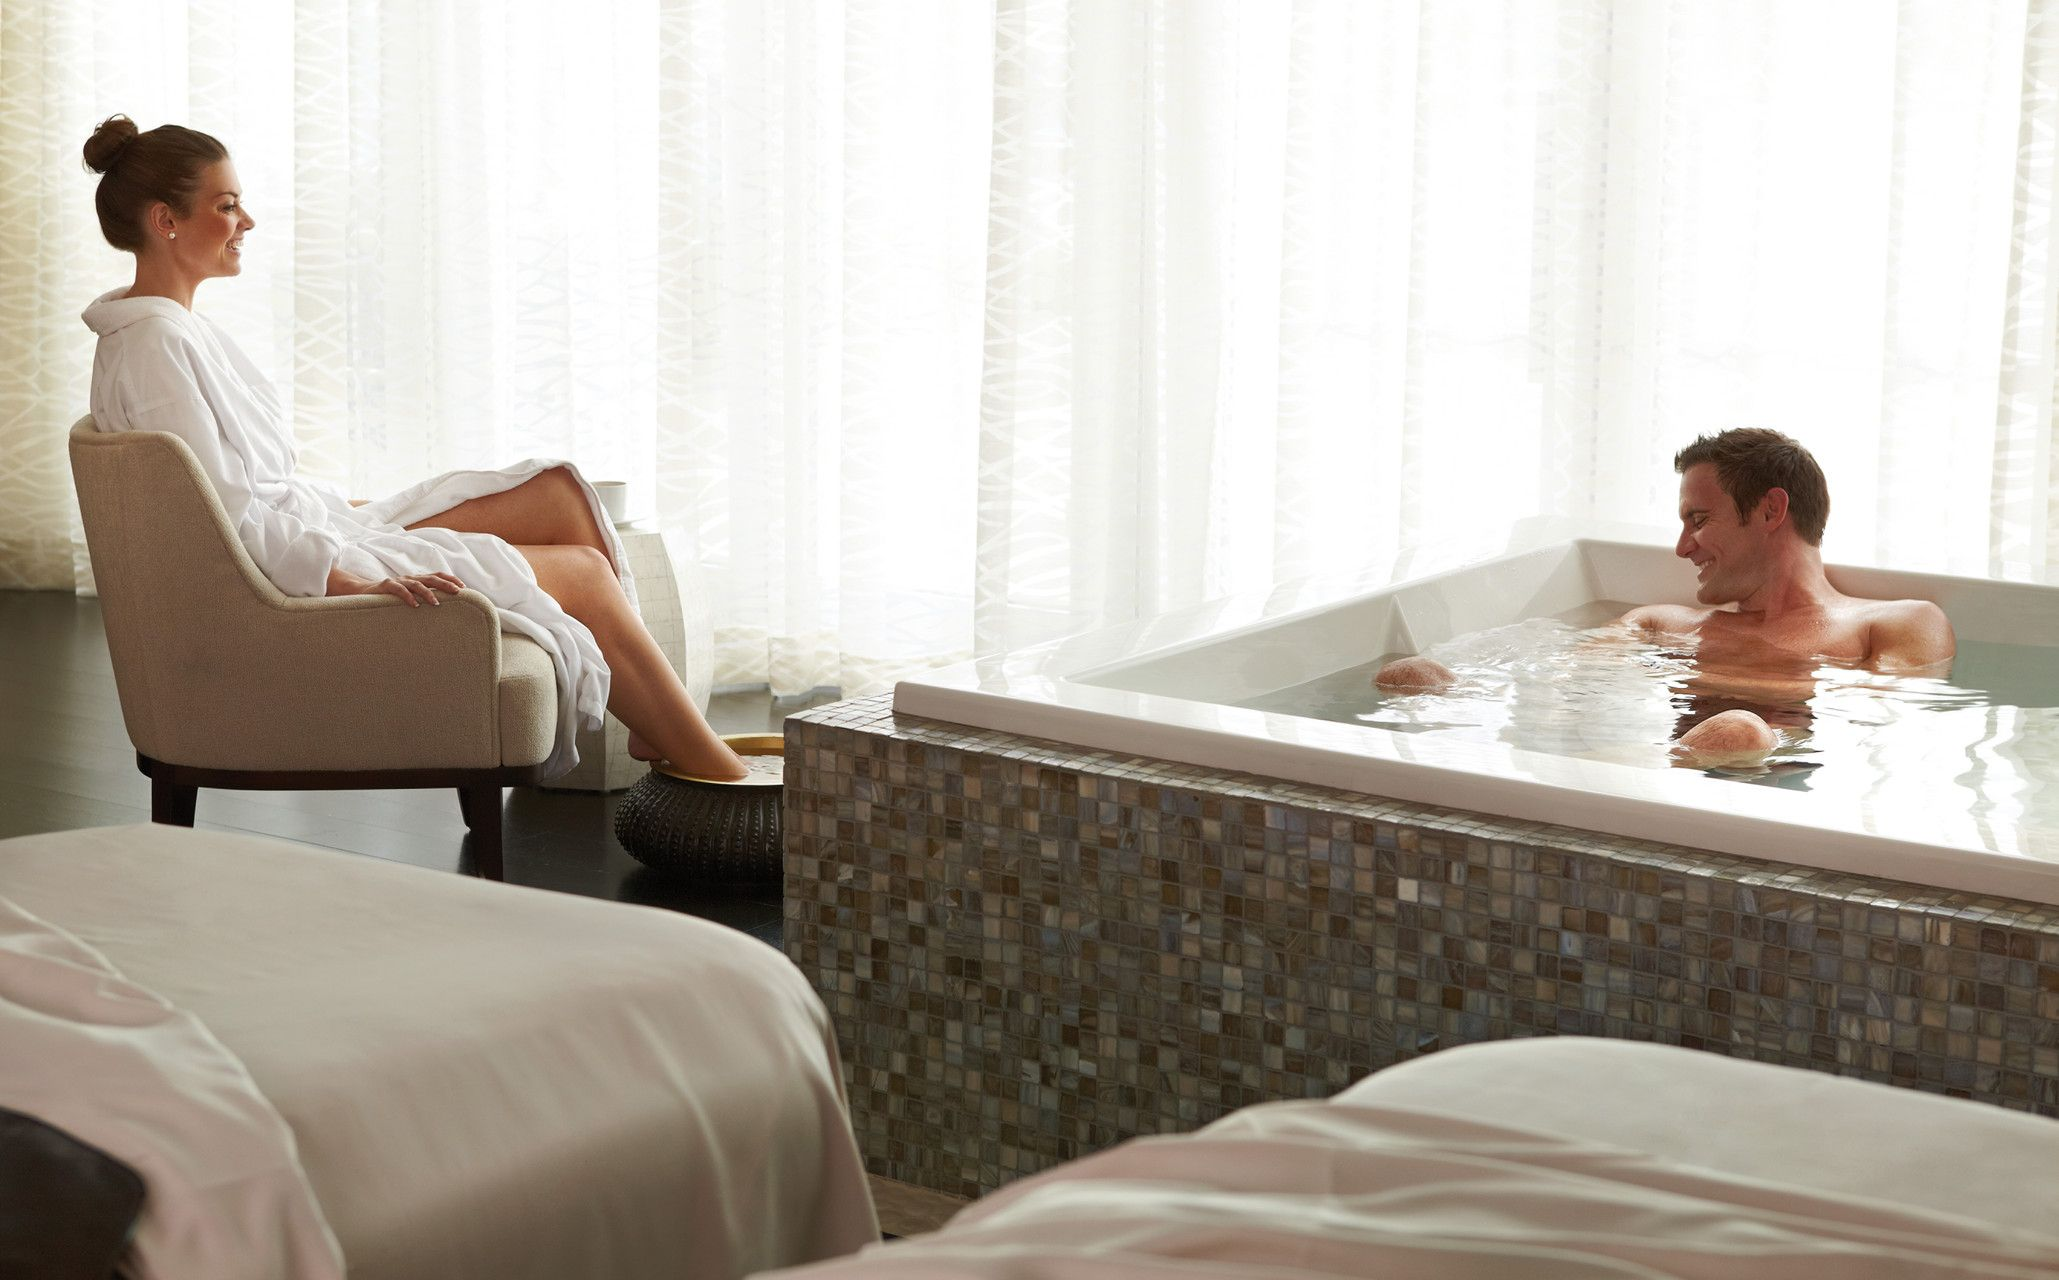 Best Spa In Baltimore Baltimore Spa Four Seasons Baltimore Best Spa Spa Spa Massage